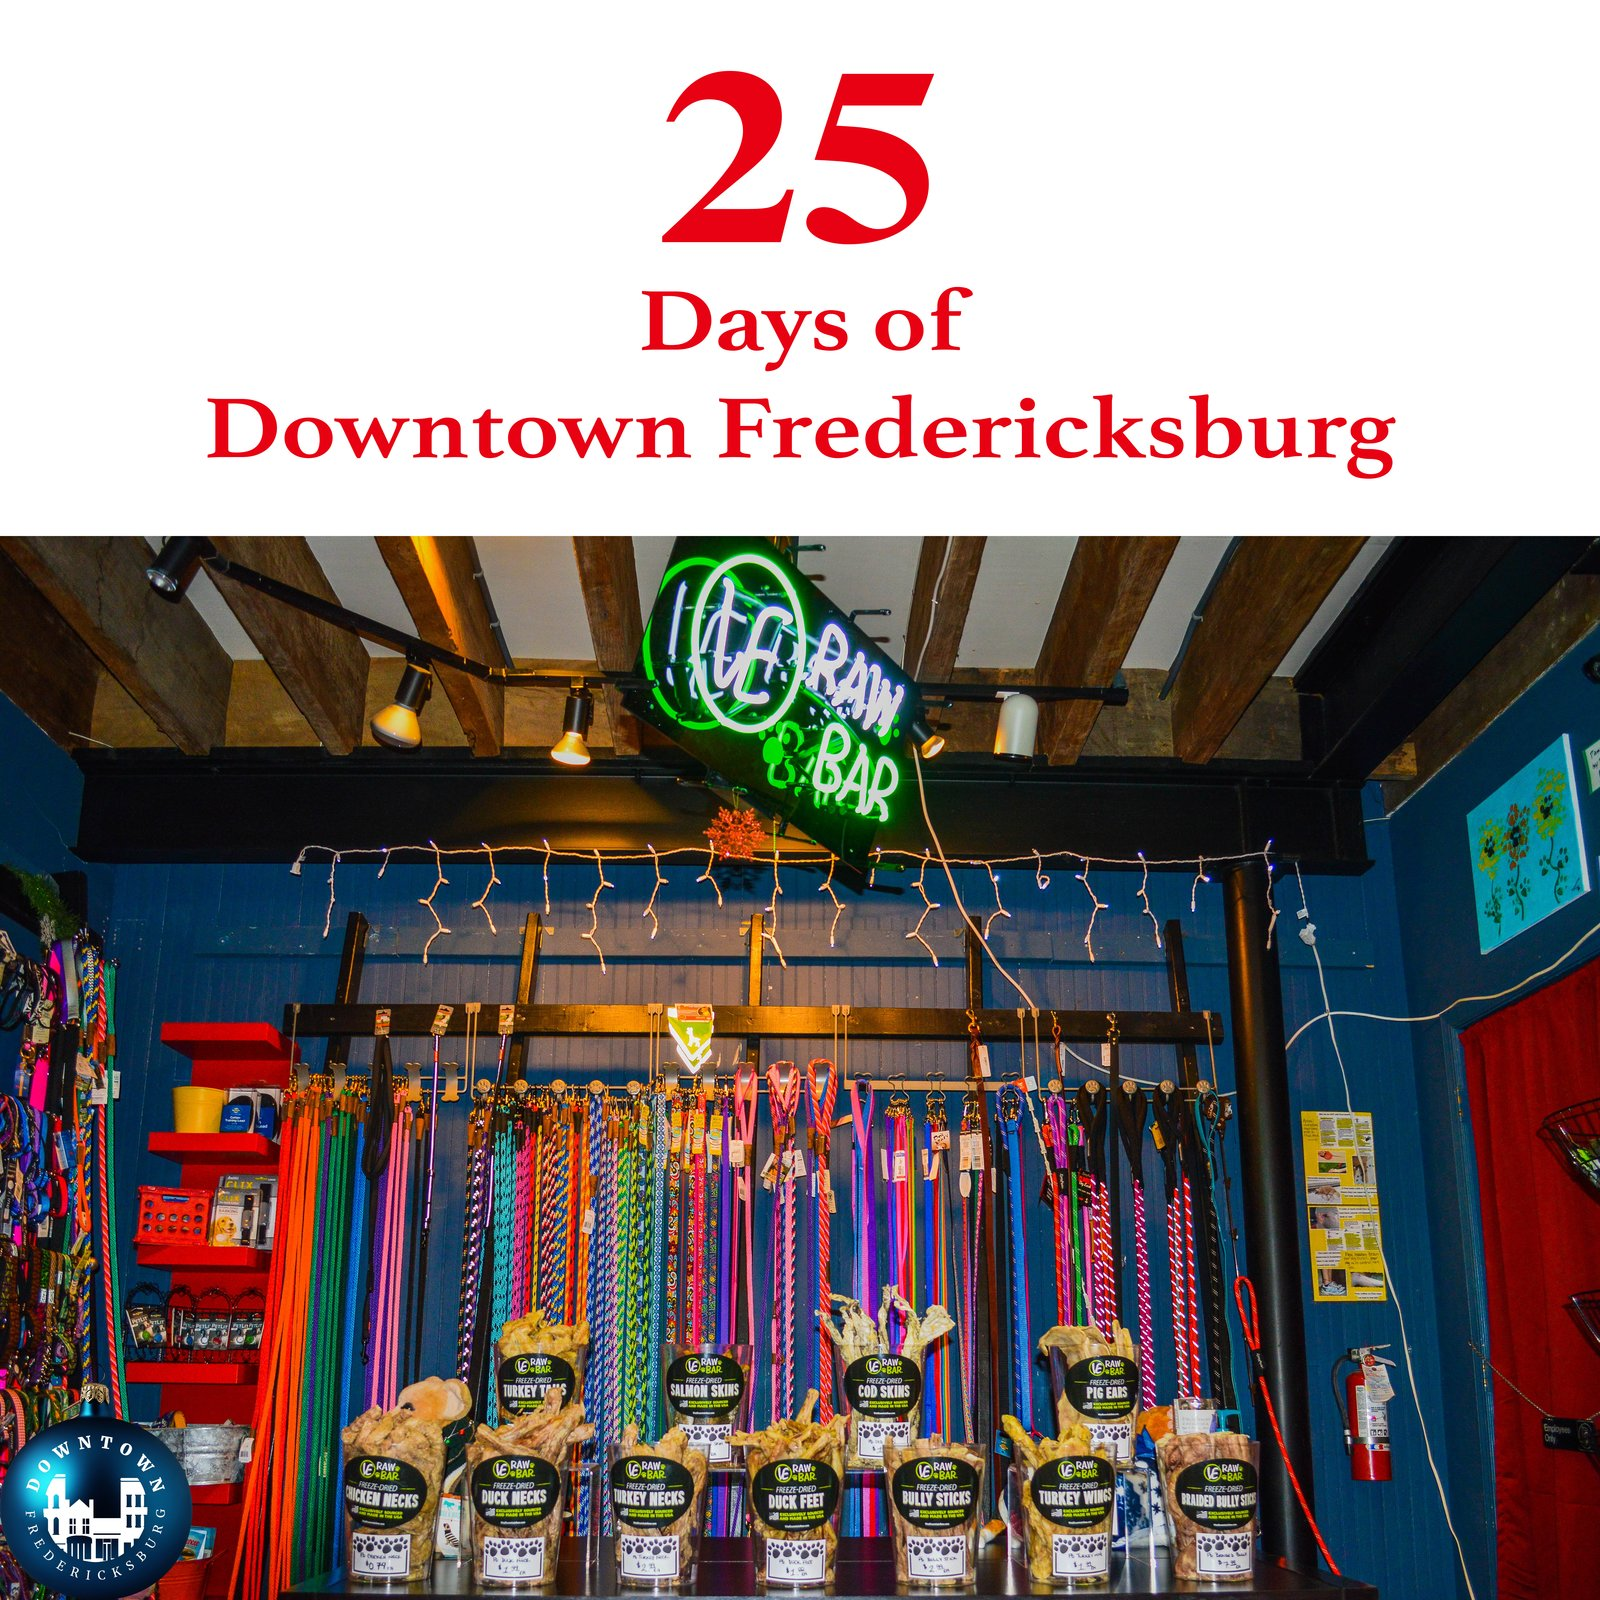 Gift Six Santa Paws is coming to town, and he's stopping by Dog Krazy for your furry friends. www.facebook.com/DowntownFredericksburg  25 Days of Downtown Fredericksburg by Downtown Fredericksburg